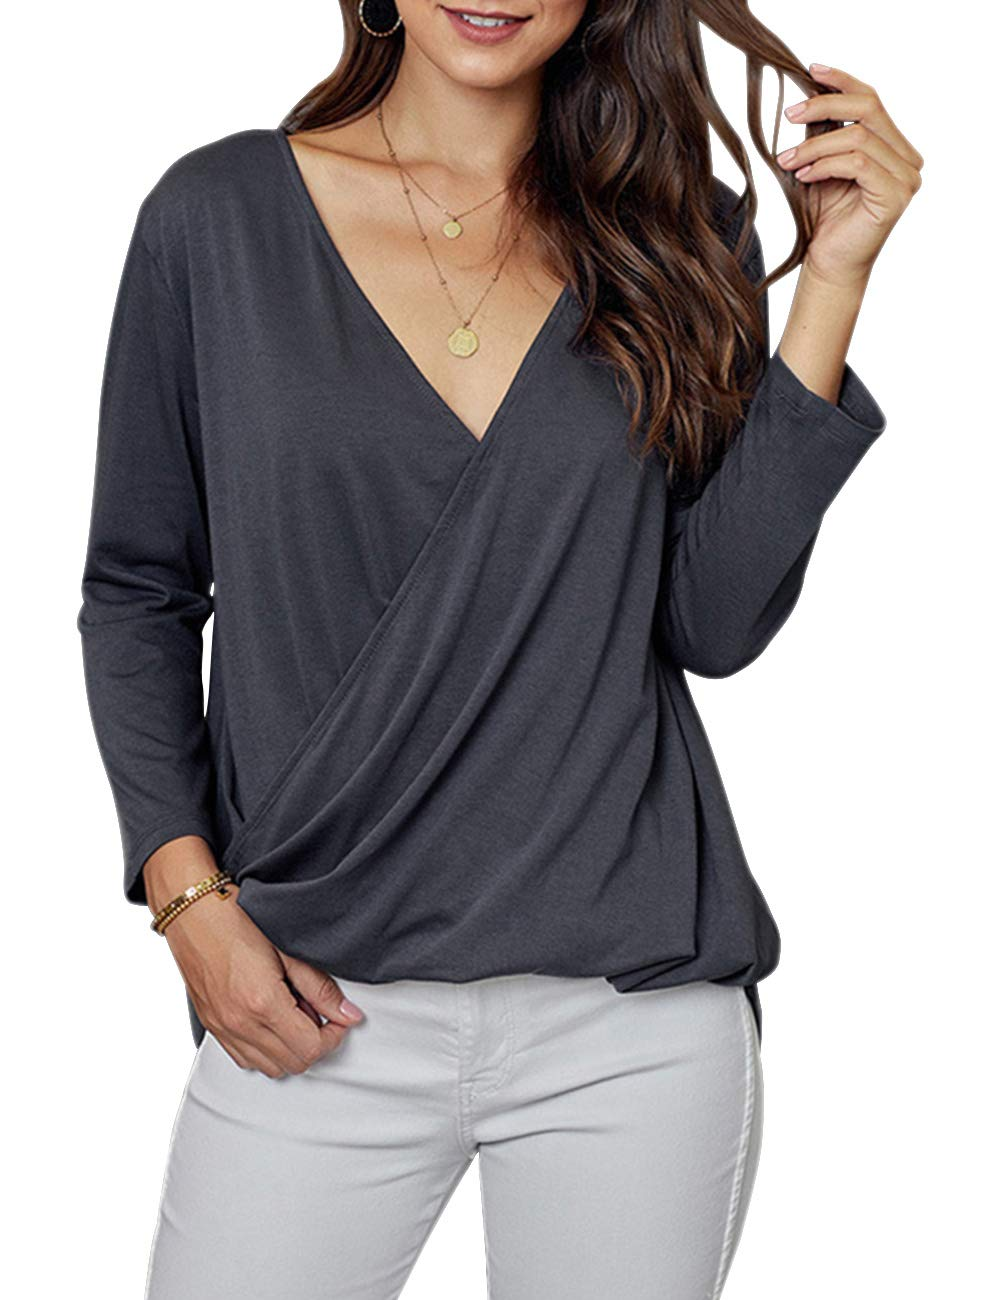 Kelove Women V-Neck Wrap Front Irregular Twist Hem 3/4 Sleeve Solid Color Casual Loose Lightweight Shirts Blouses Tunic Tops Gray by Kelove